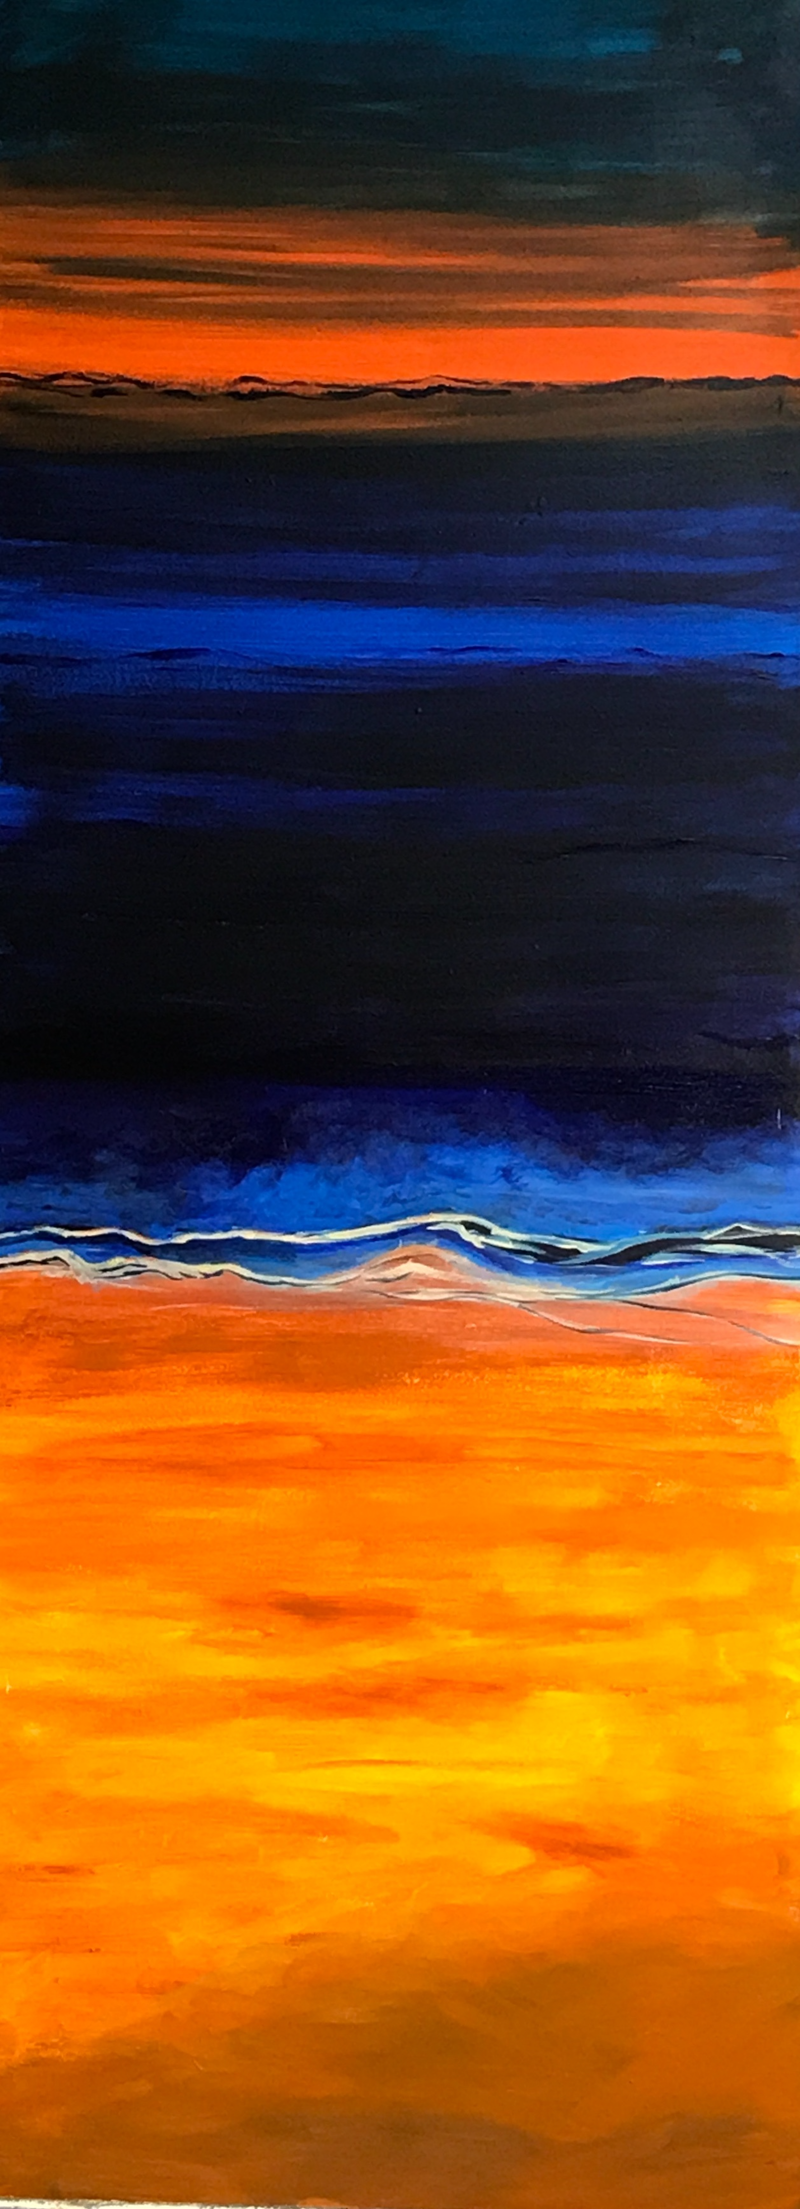 (CreativeWork) January Sunset, Waikiki, Western Australia  by Noela O'Keefe. arcylic-painting. Shop online at Bluethumb.